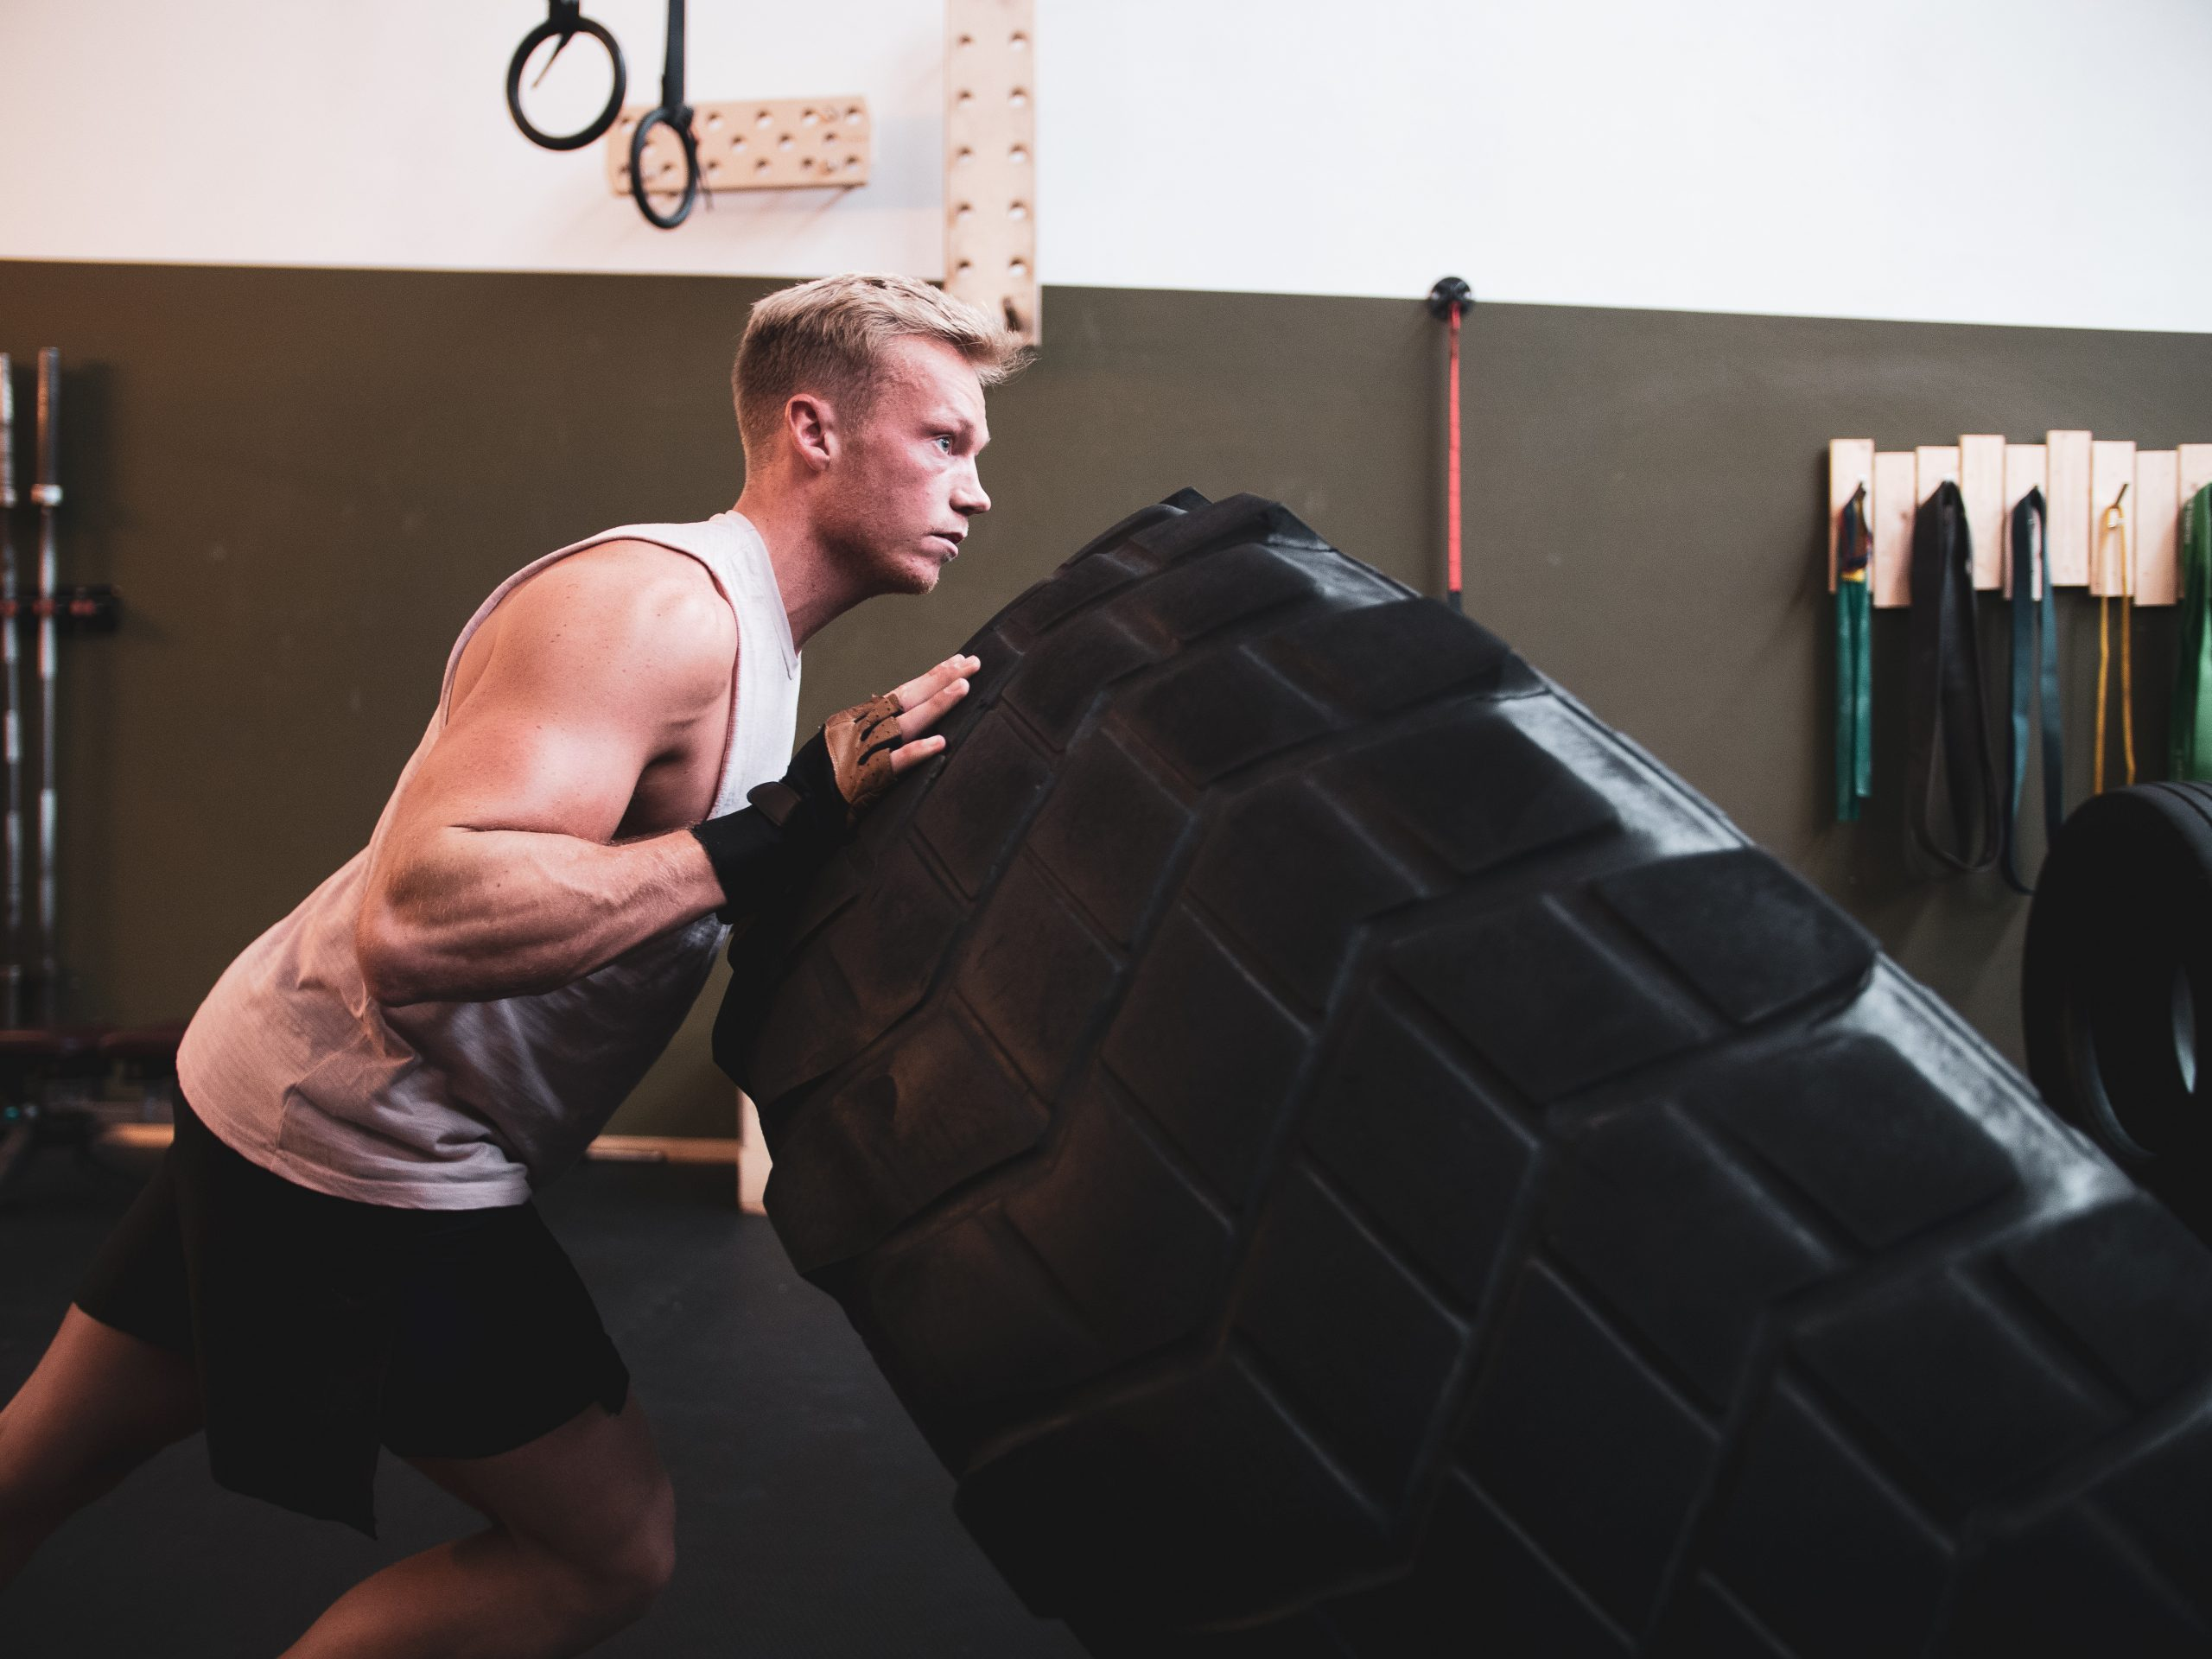 crossfit with large tire